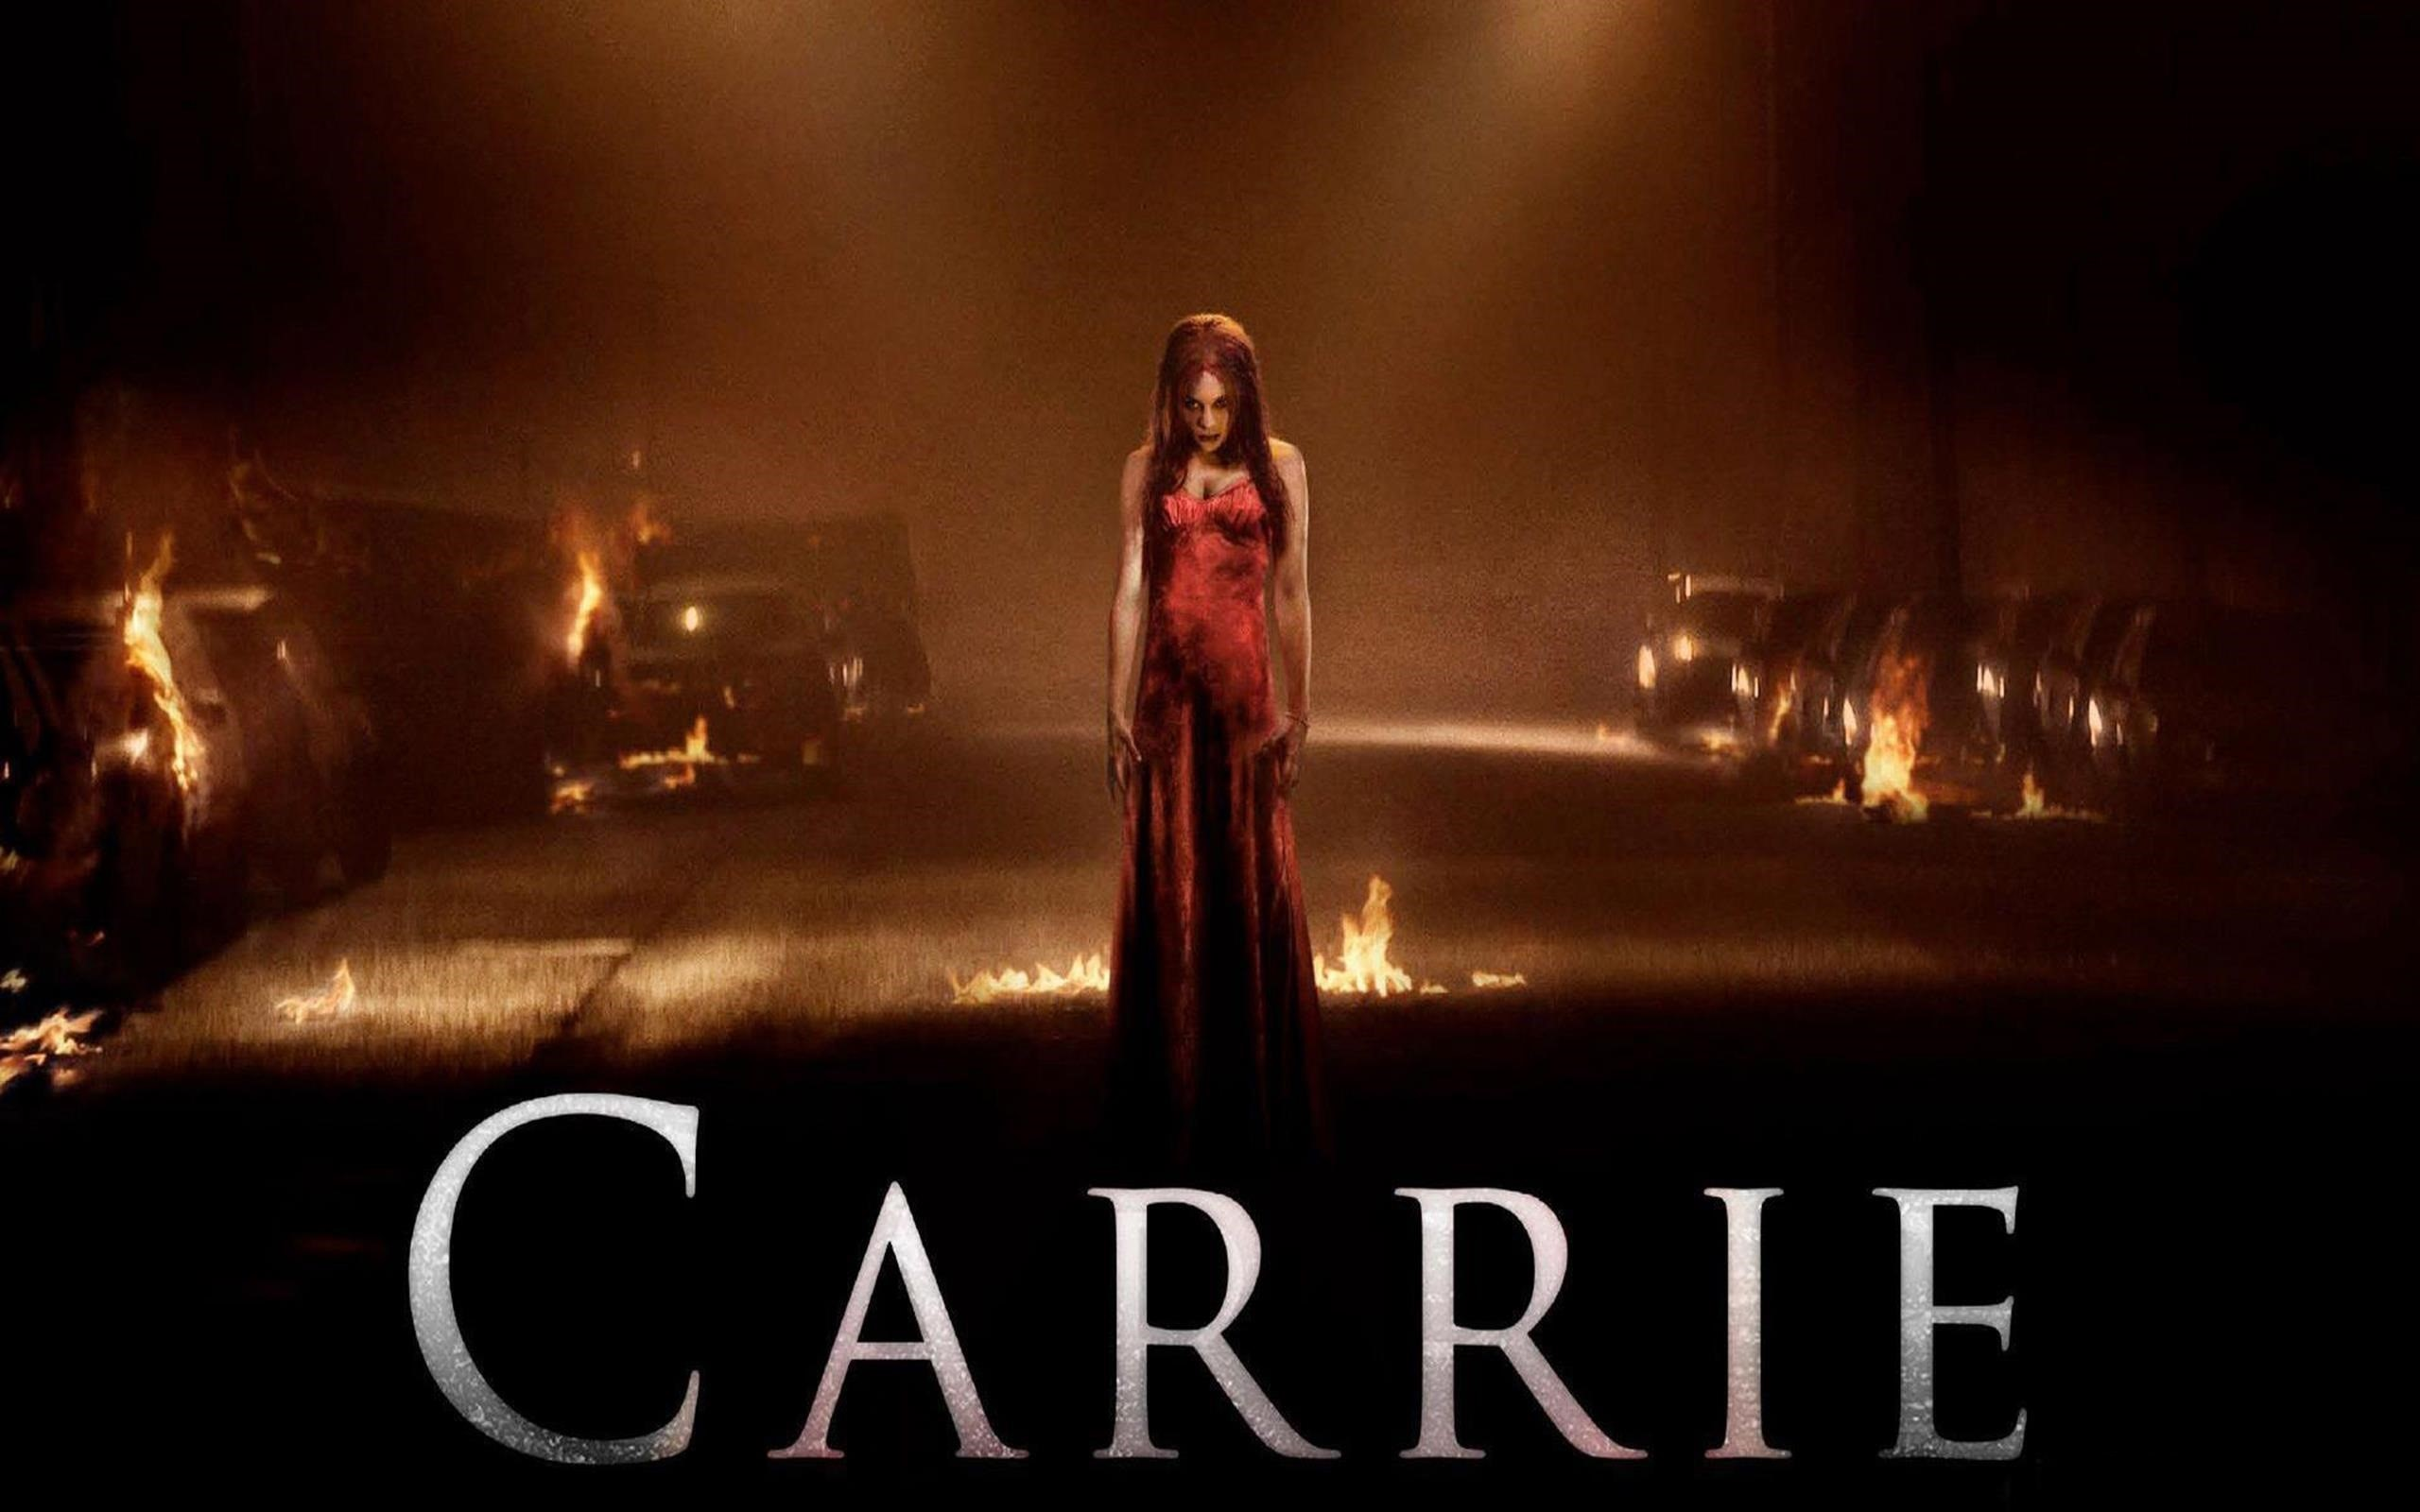 Beautiful Wallpaper Movie Hollywood - Carrie-Upcoming-2014-Hollywood-Horror-Movie-Wallpaper  Gallery_626651.jpg